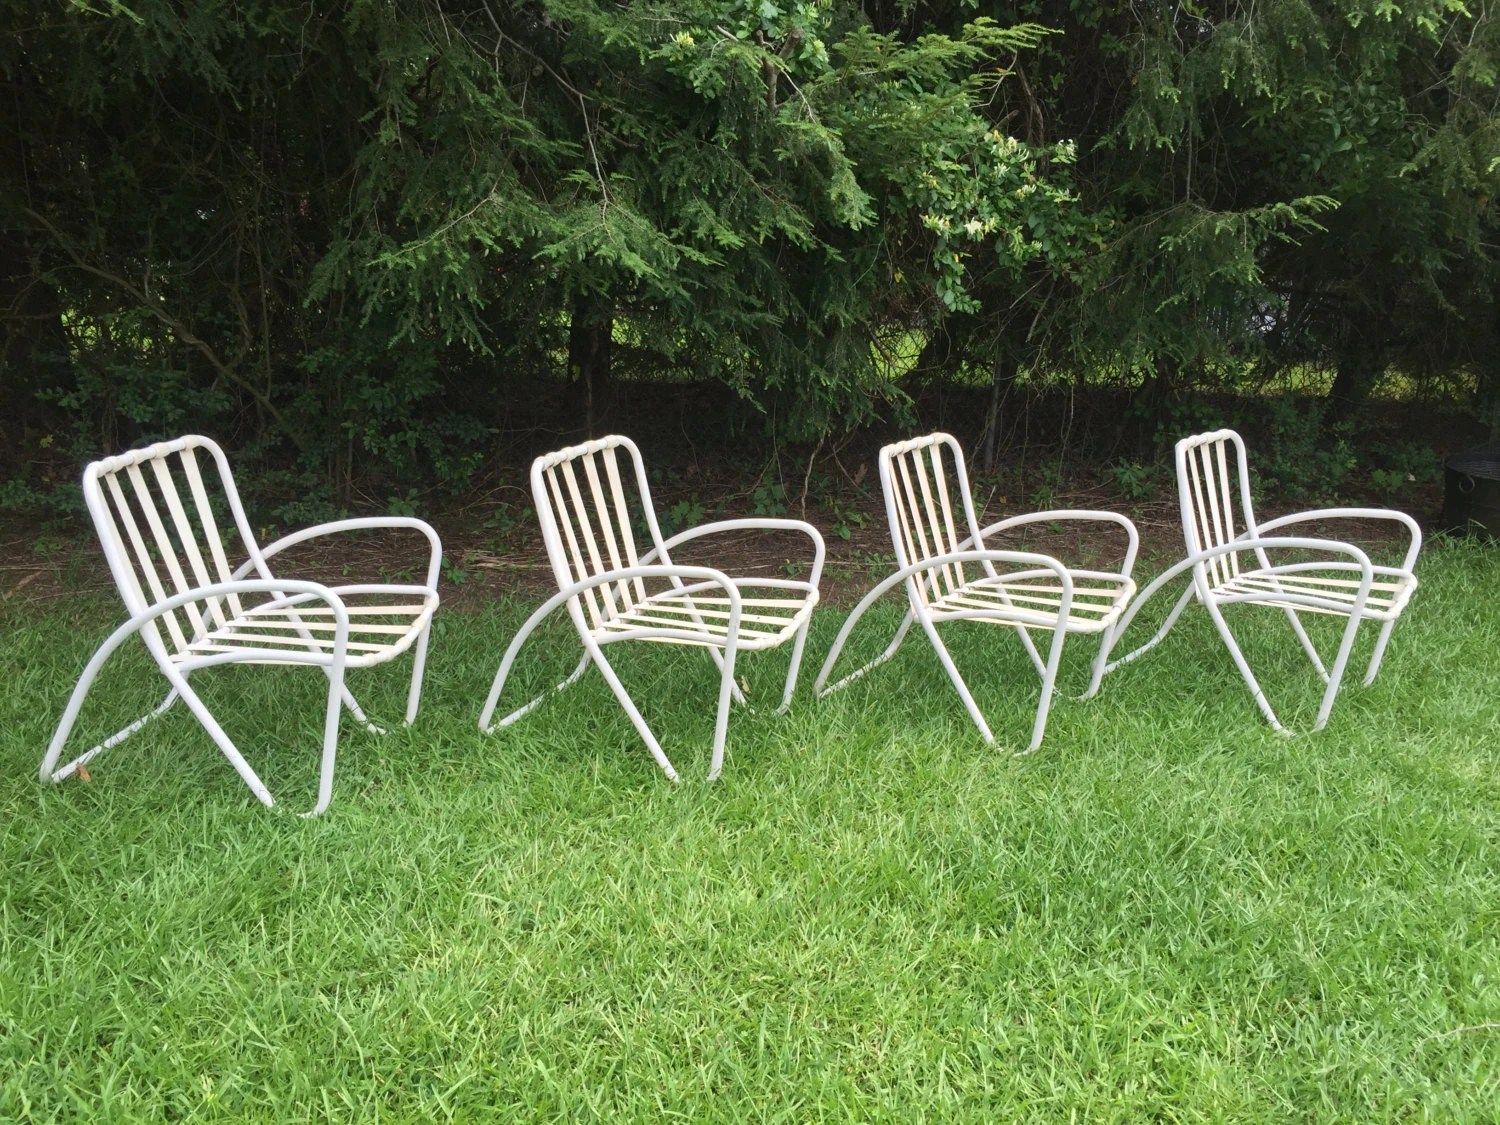 Mid Century Patio Chairs Vintage Mid Century Modern Brown Jordan Set Of 4 Patio Chairs